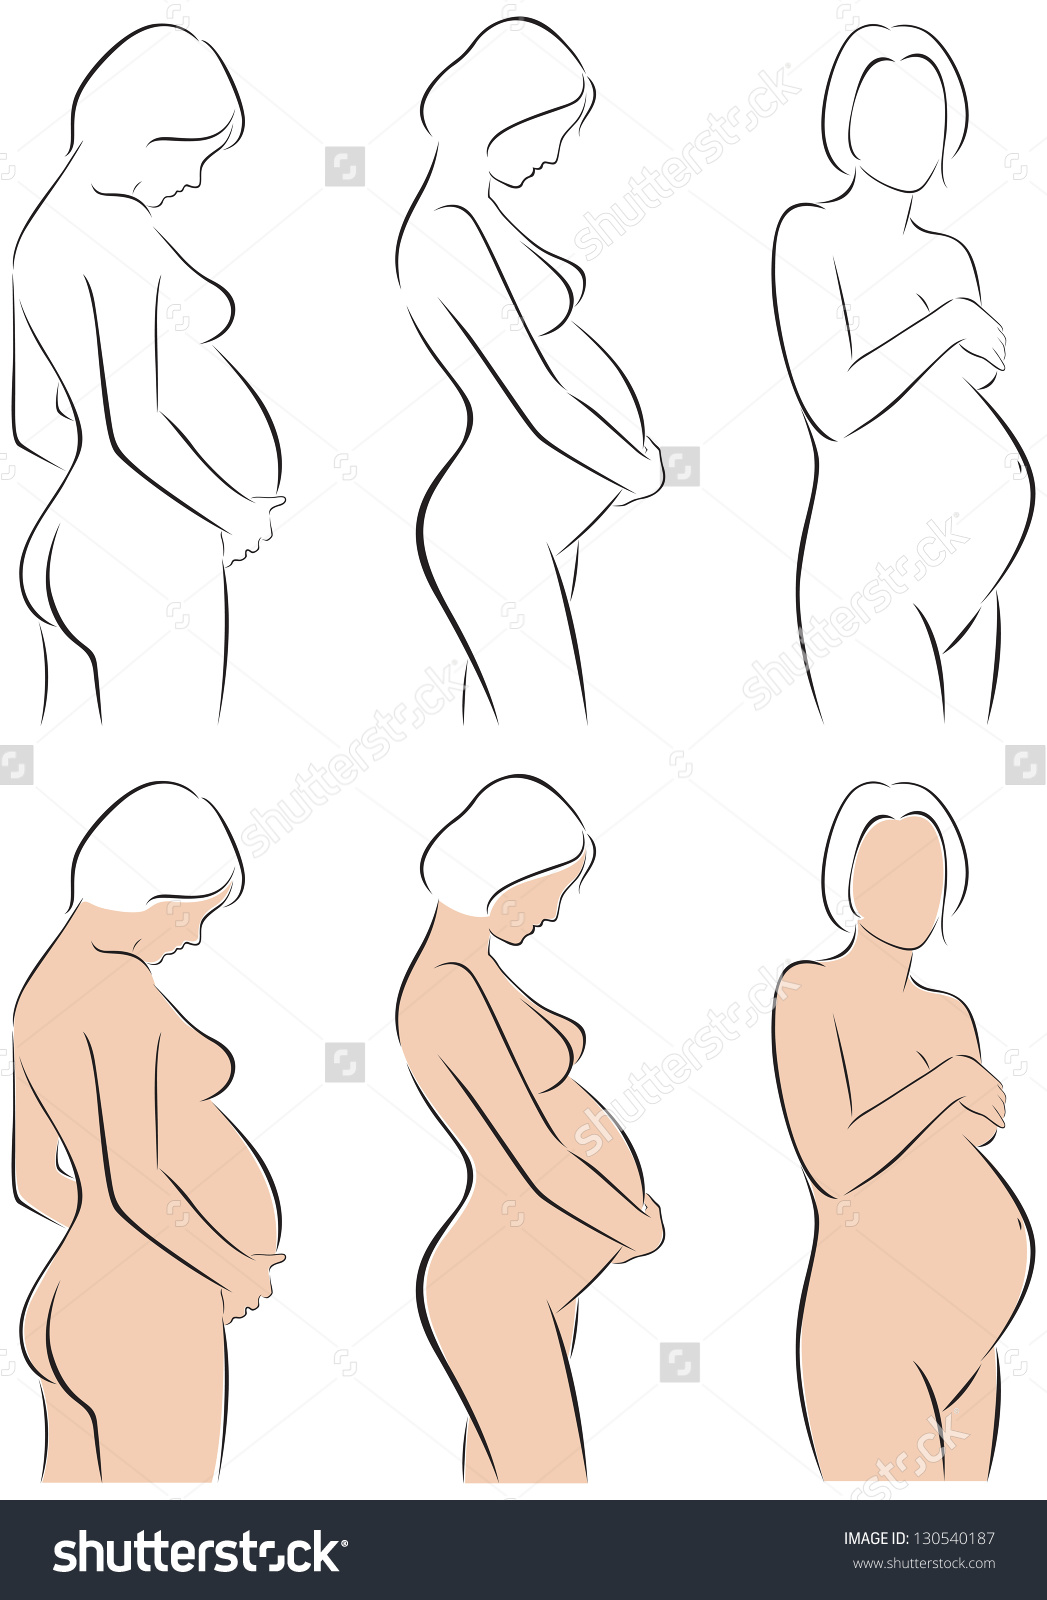 How to draw a nude female, jada stevens nude butt cum gif